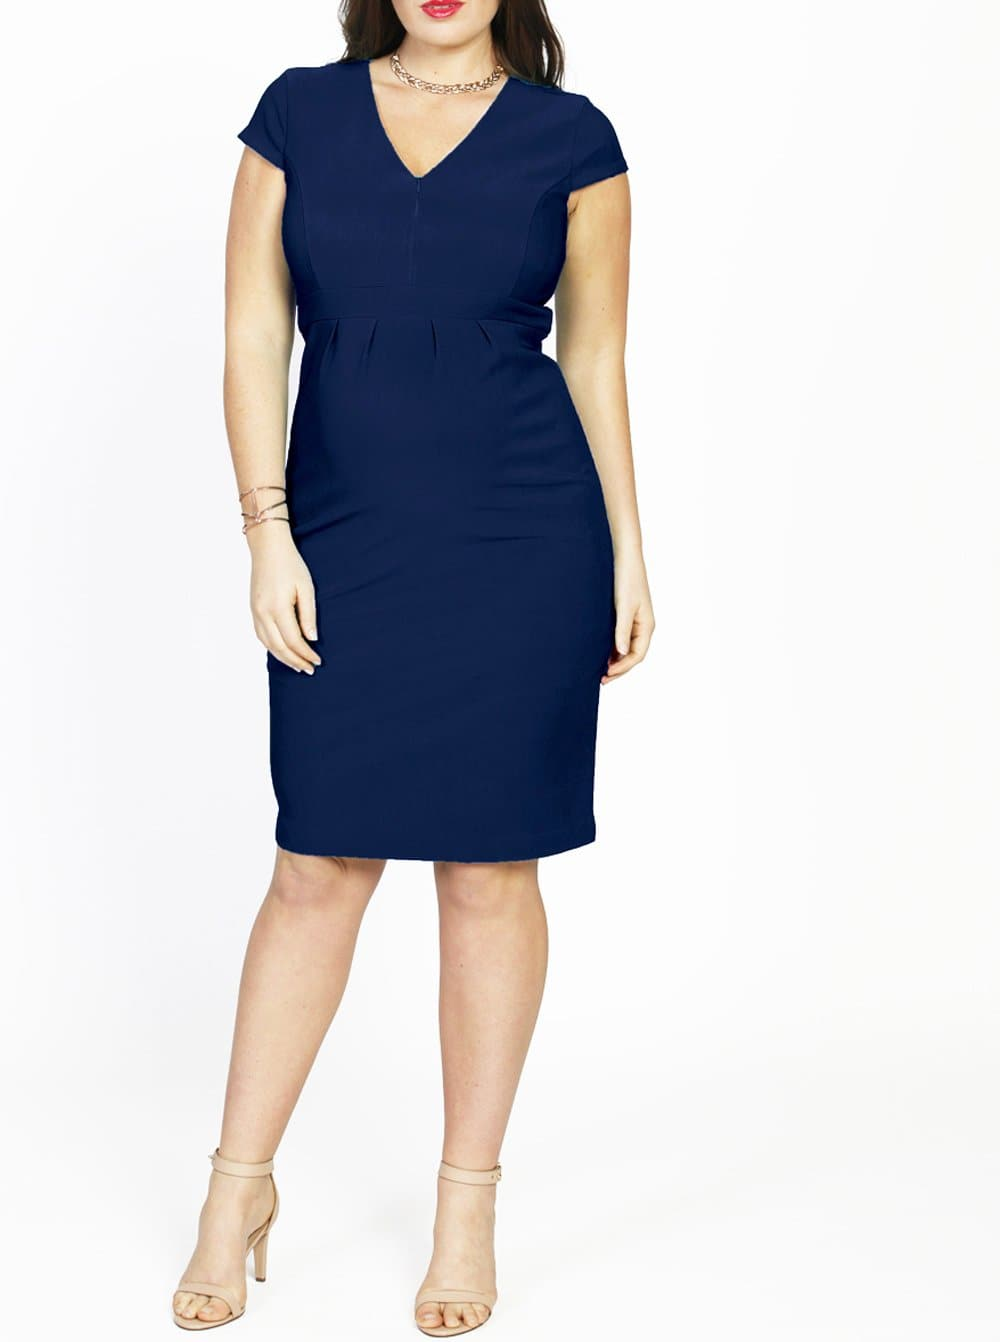 Maternity Zipper Nursing Party Dress with Zipper Opening - Navy - Angel Maternity - Maternity clothes - shop online